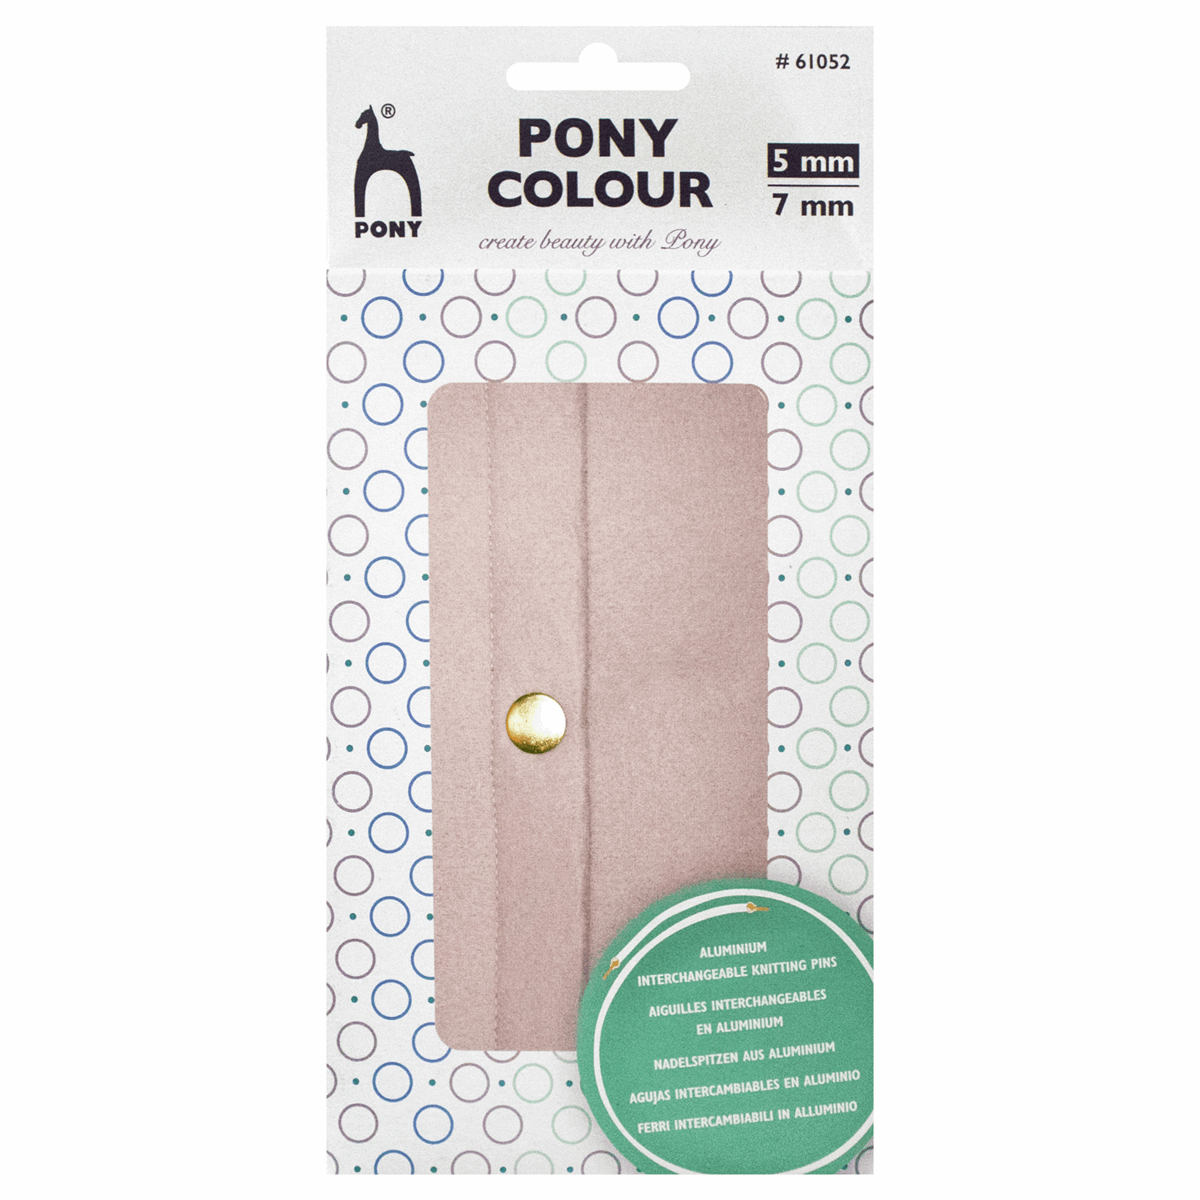 PONY Colour Interchangeable Circular Knitting Needles Set - 5-7mm